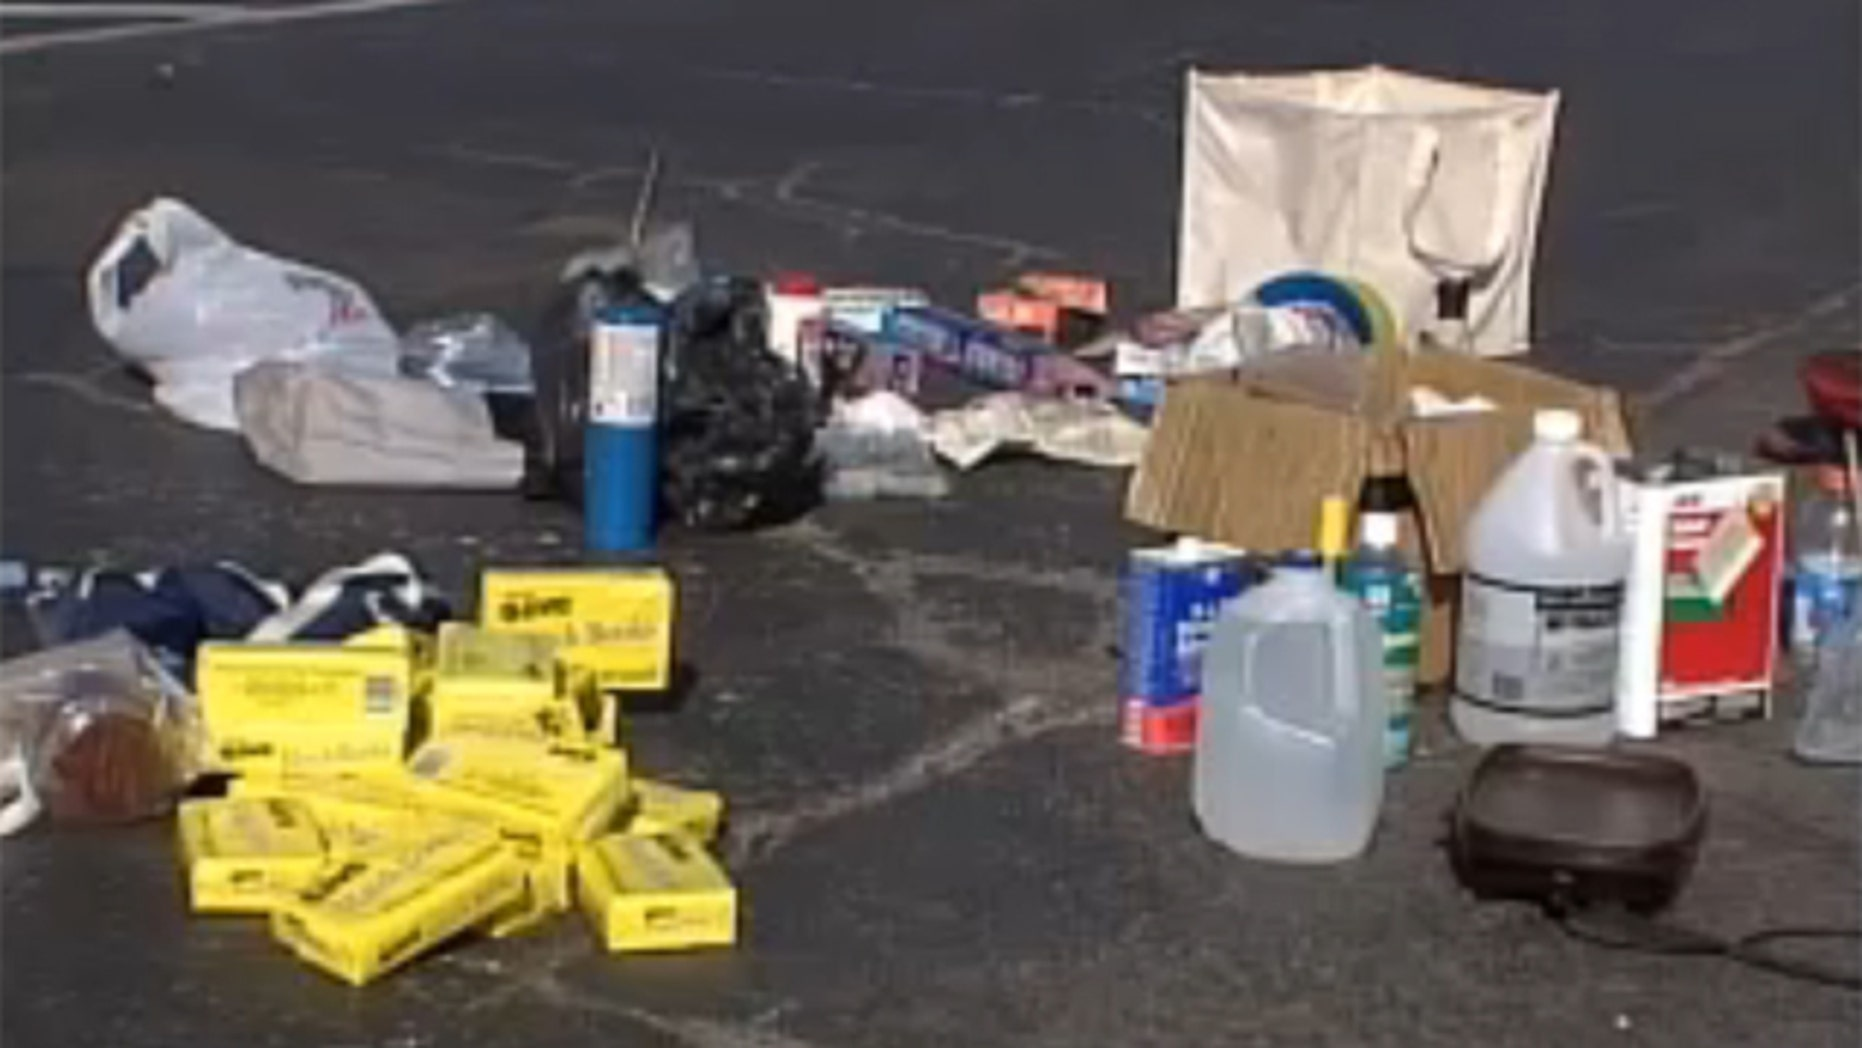 A host of toxic chemicals and materials are used to produce meth. (KOKH/Fox 25)